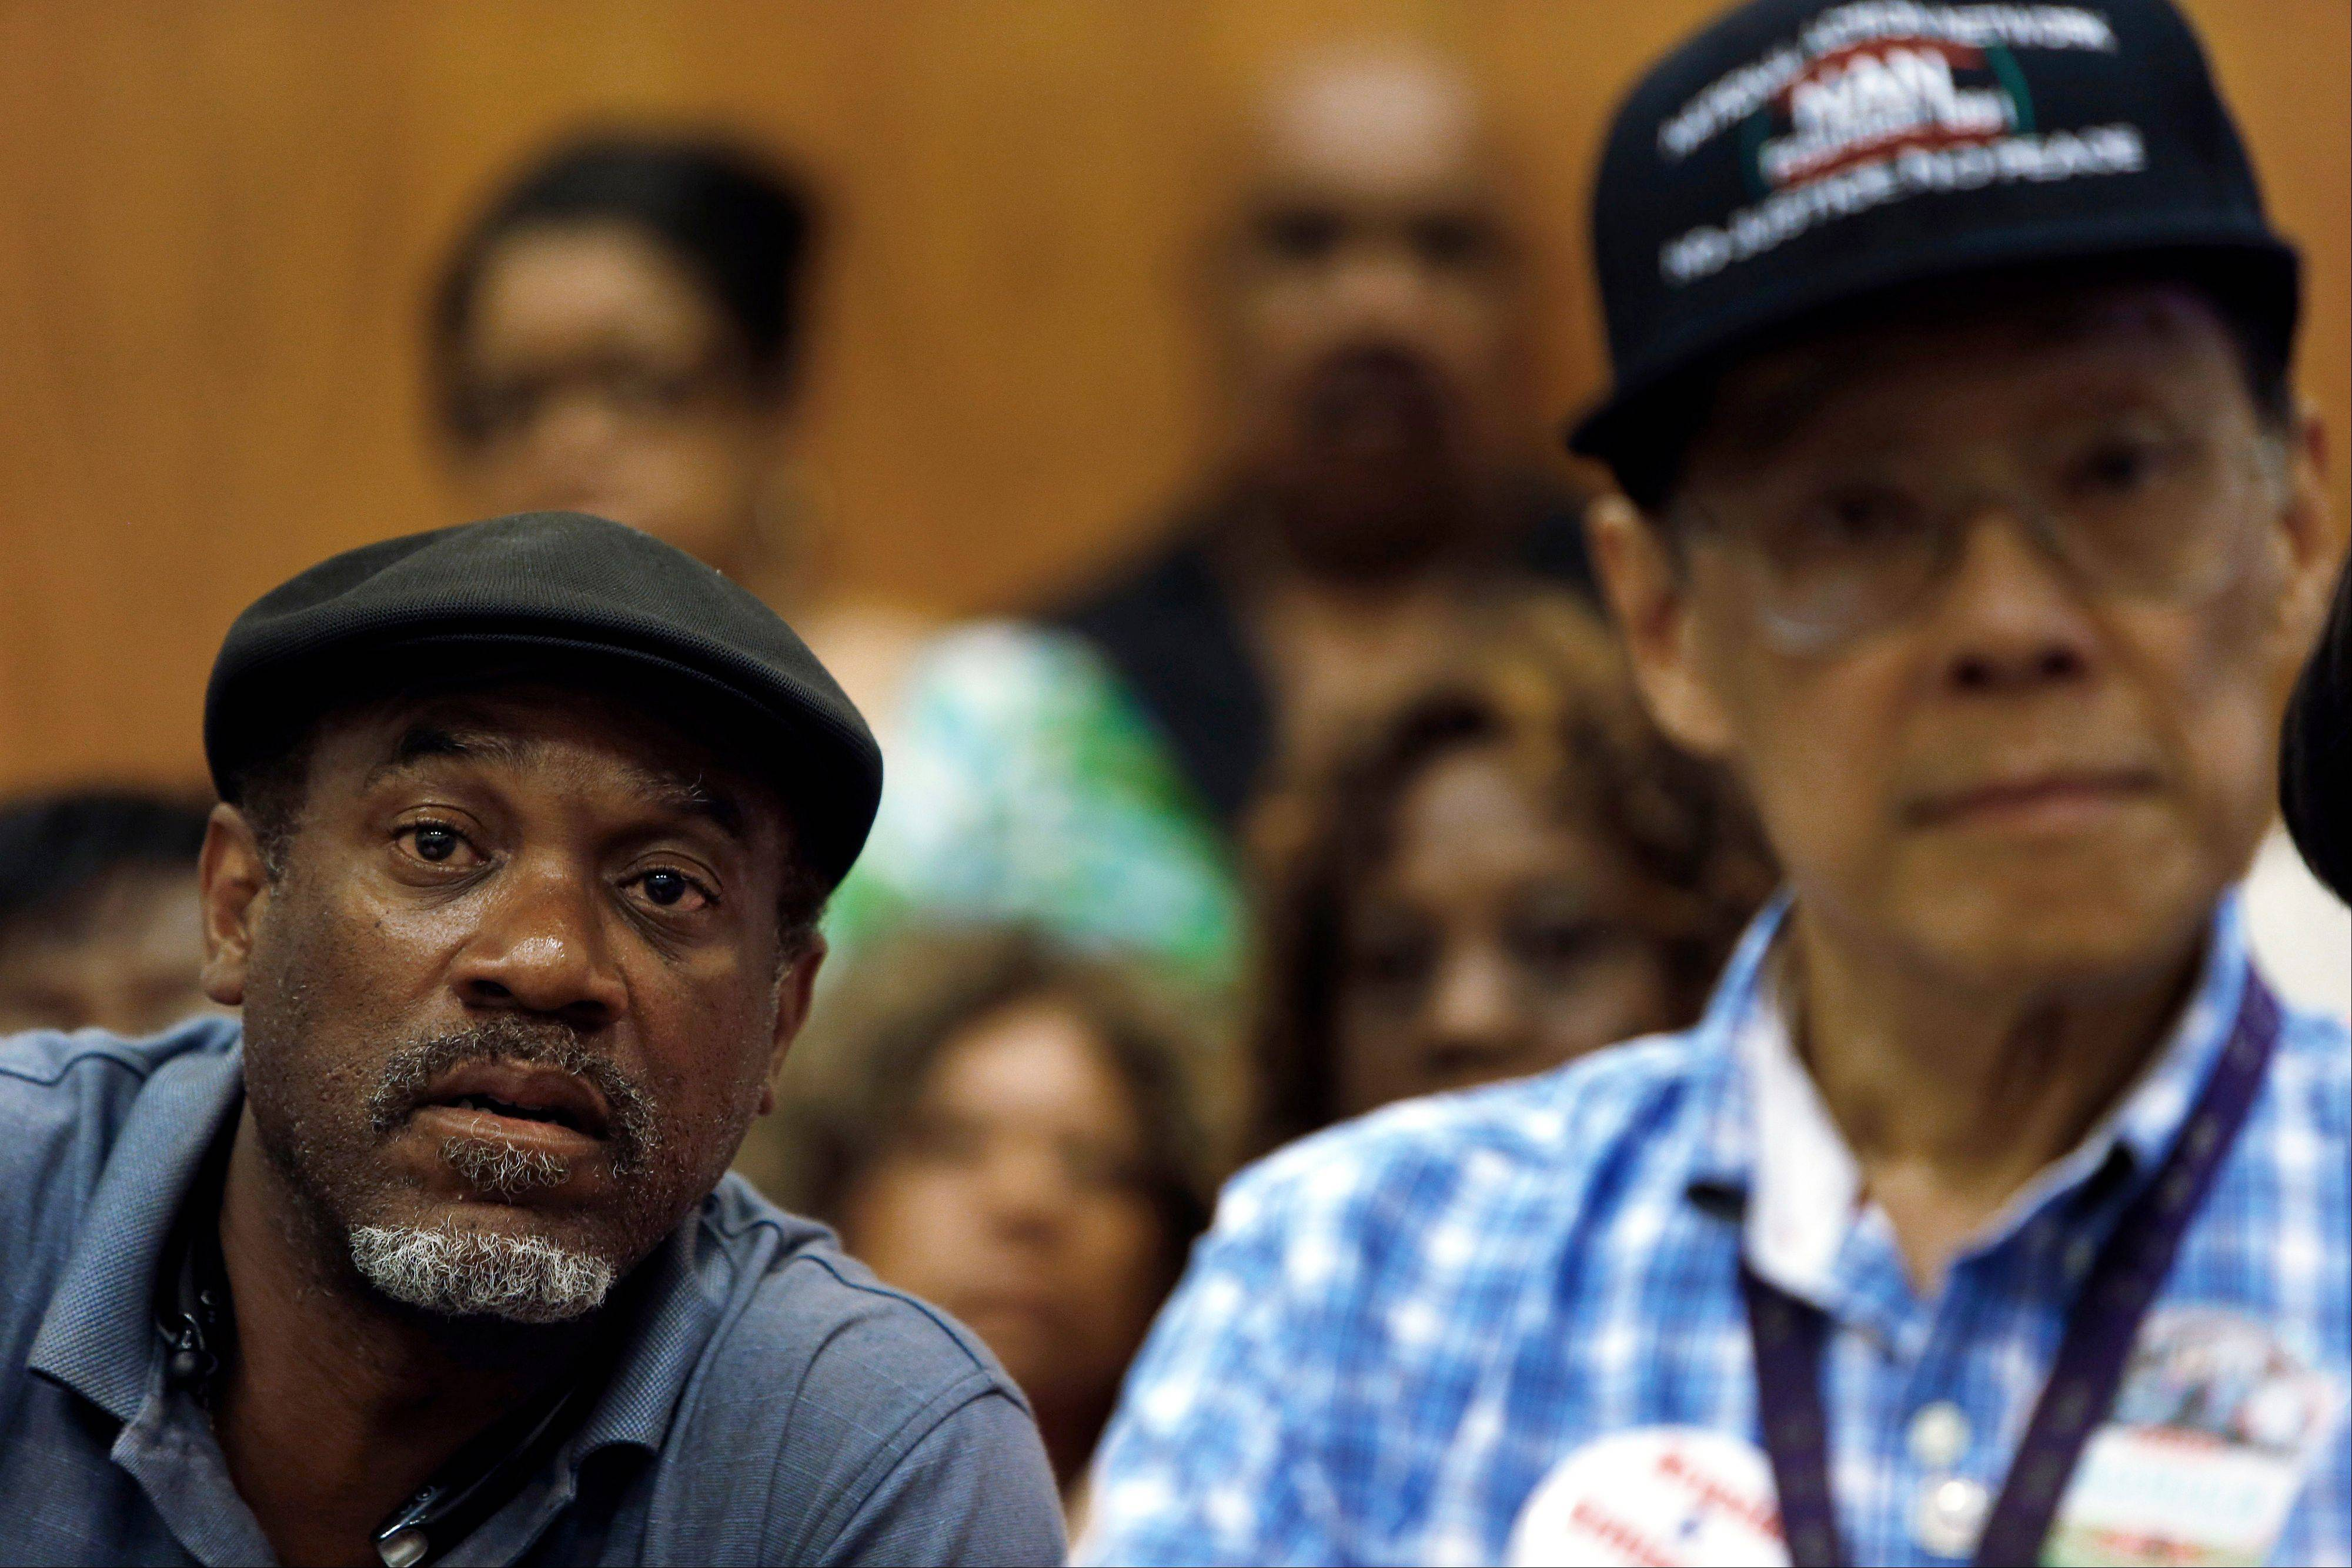 Tony Brown, left, a Department of Transportation retiree, listens to union leaders talk about what Detroit's bankruptcy filing means to thousands of retirees during a meeting in Detroit. Monday is the deadline for a host of banks, bond insurers, two employee pension systems and others standing to lose big if a federal judge declares Detroit insolvent to legally file their objections to the largest municipal bankruptcy in U.S. history.